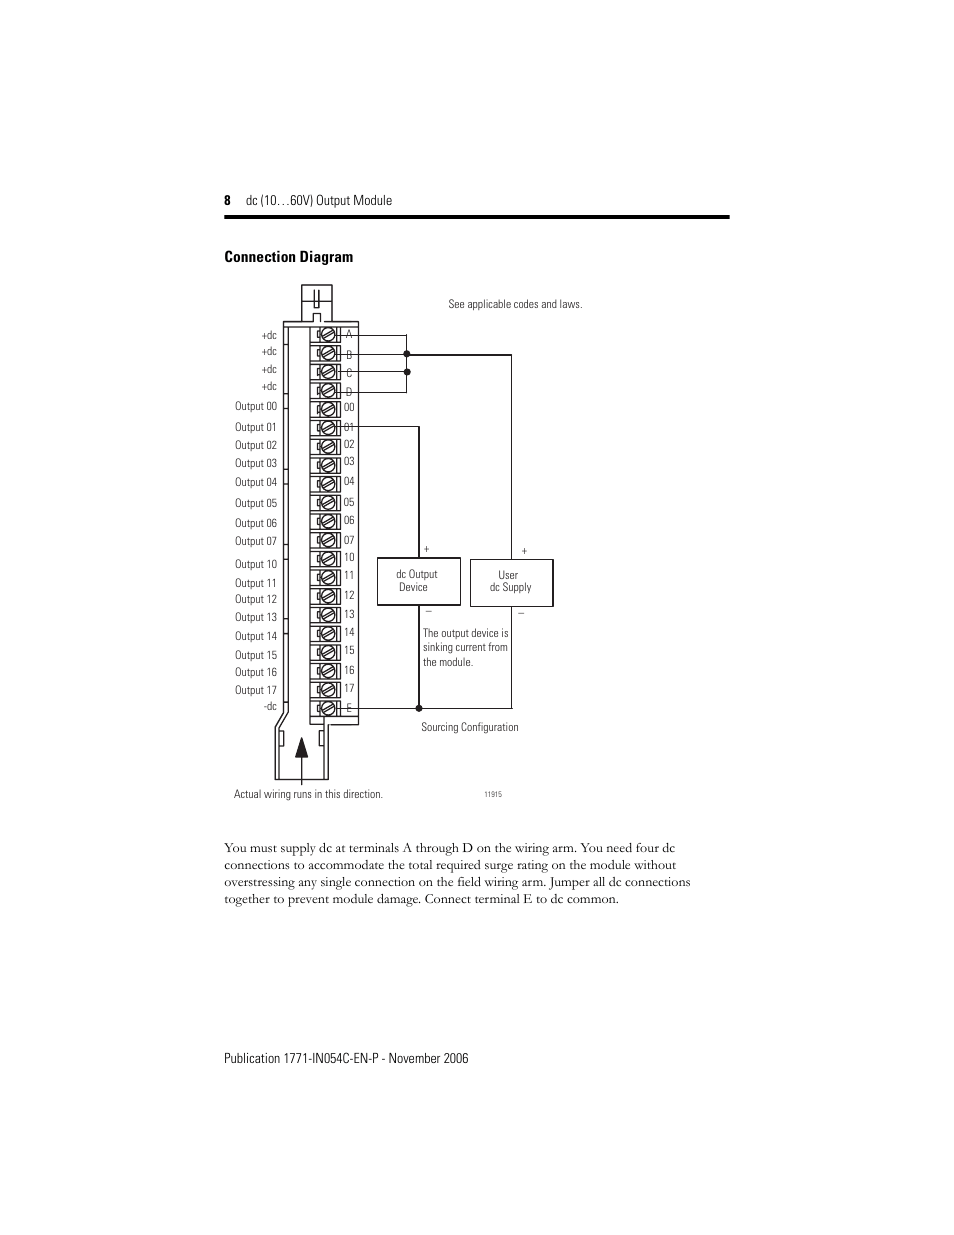 medium resolution of connection diagram rockwell automation 1771 obd series c instl instr dc 10 60v output user manual page 8 20